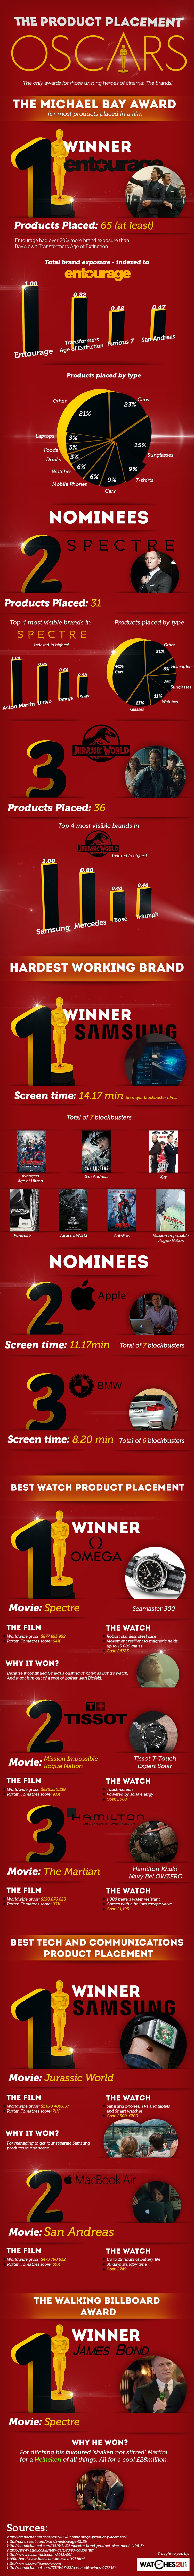 Product Placement Oscars [Infographic]